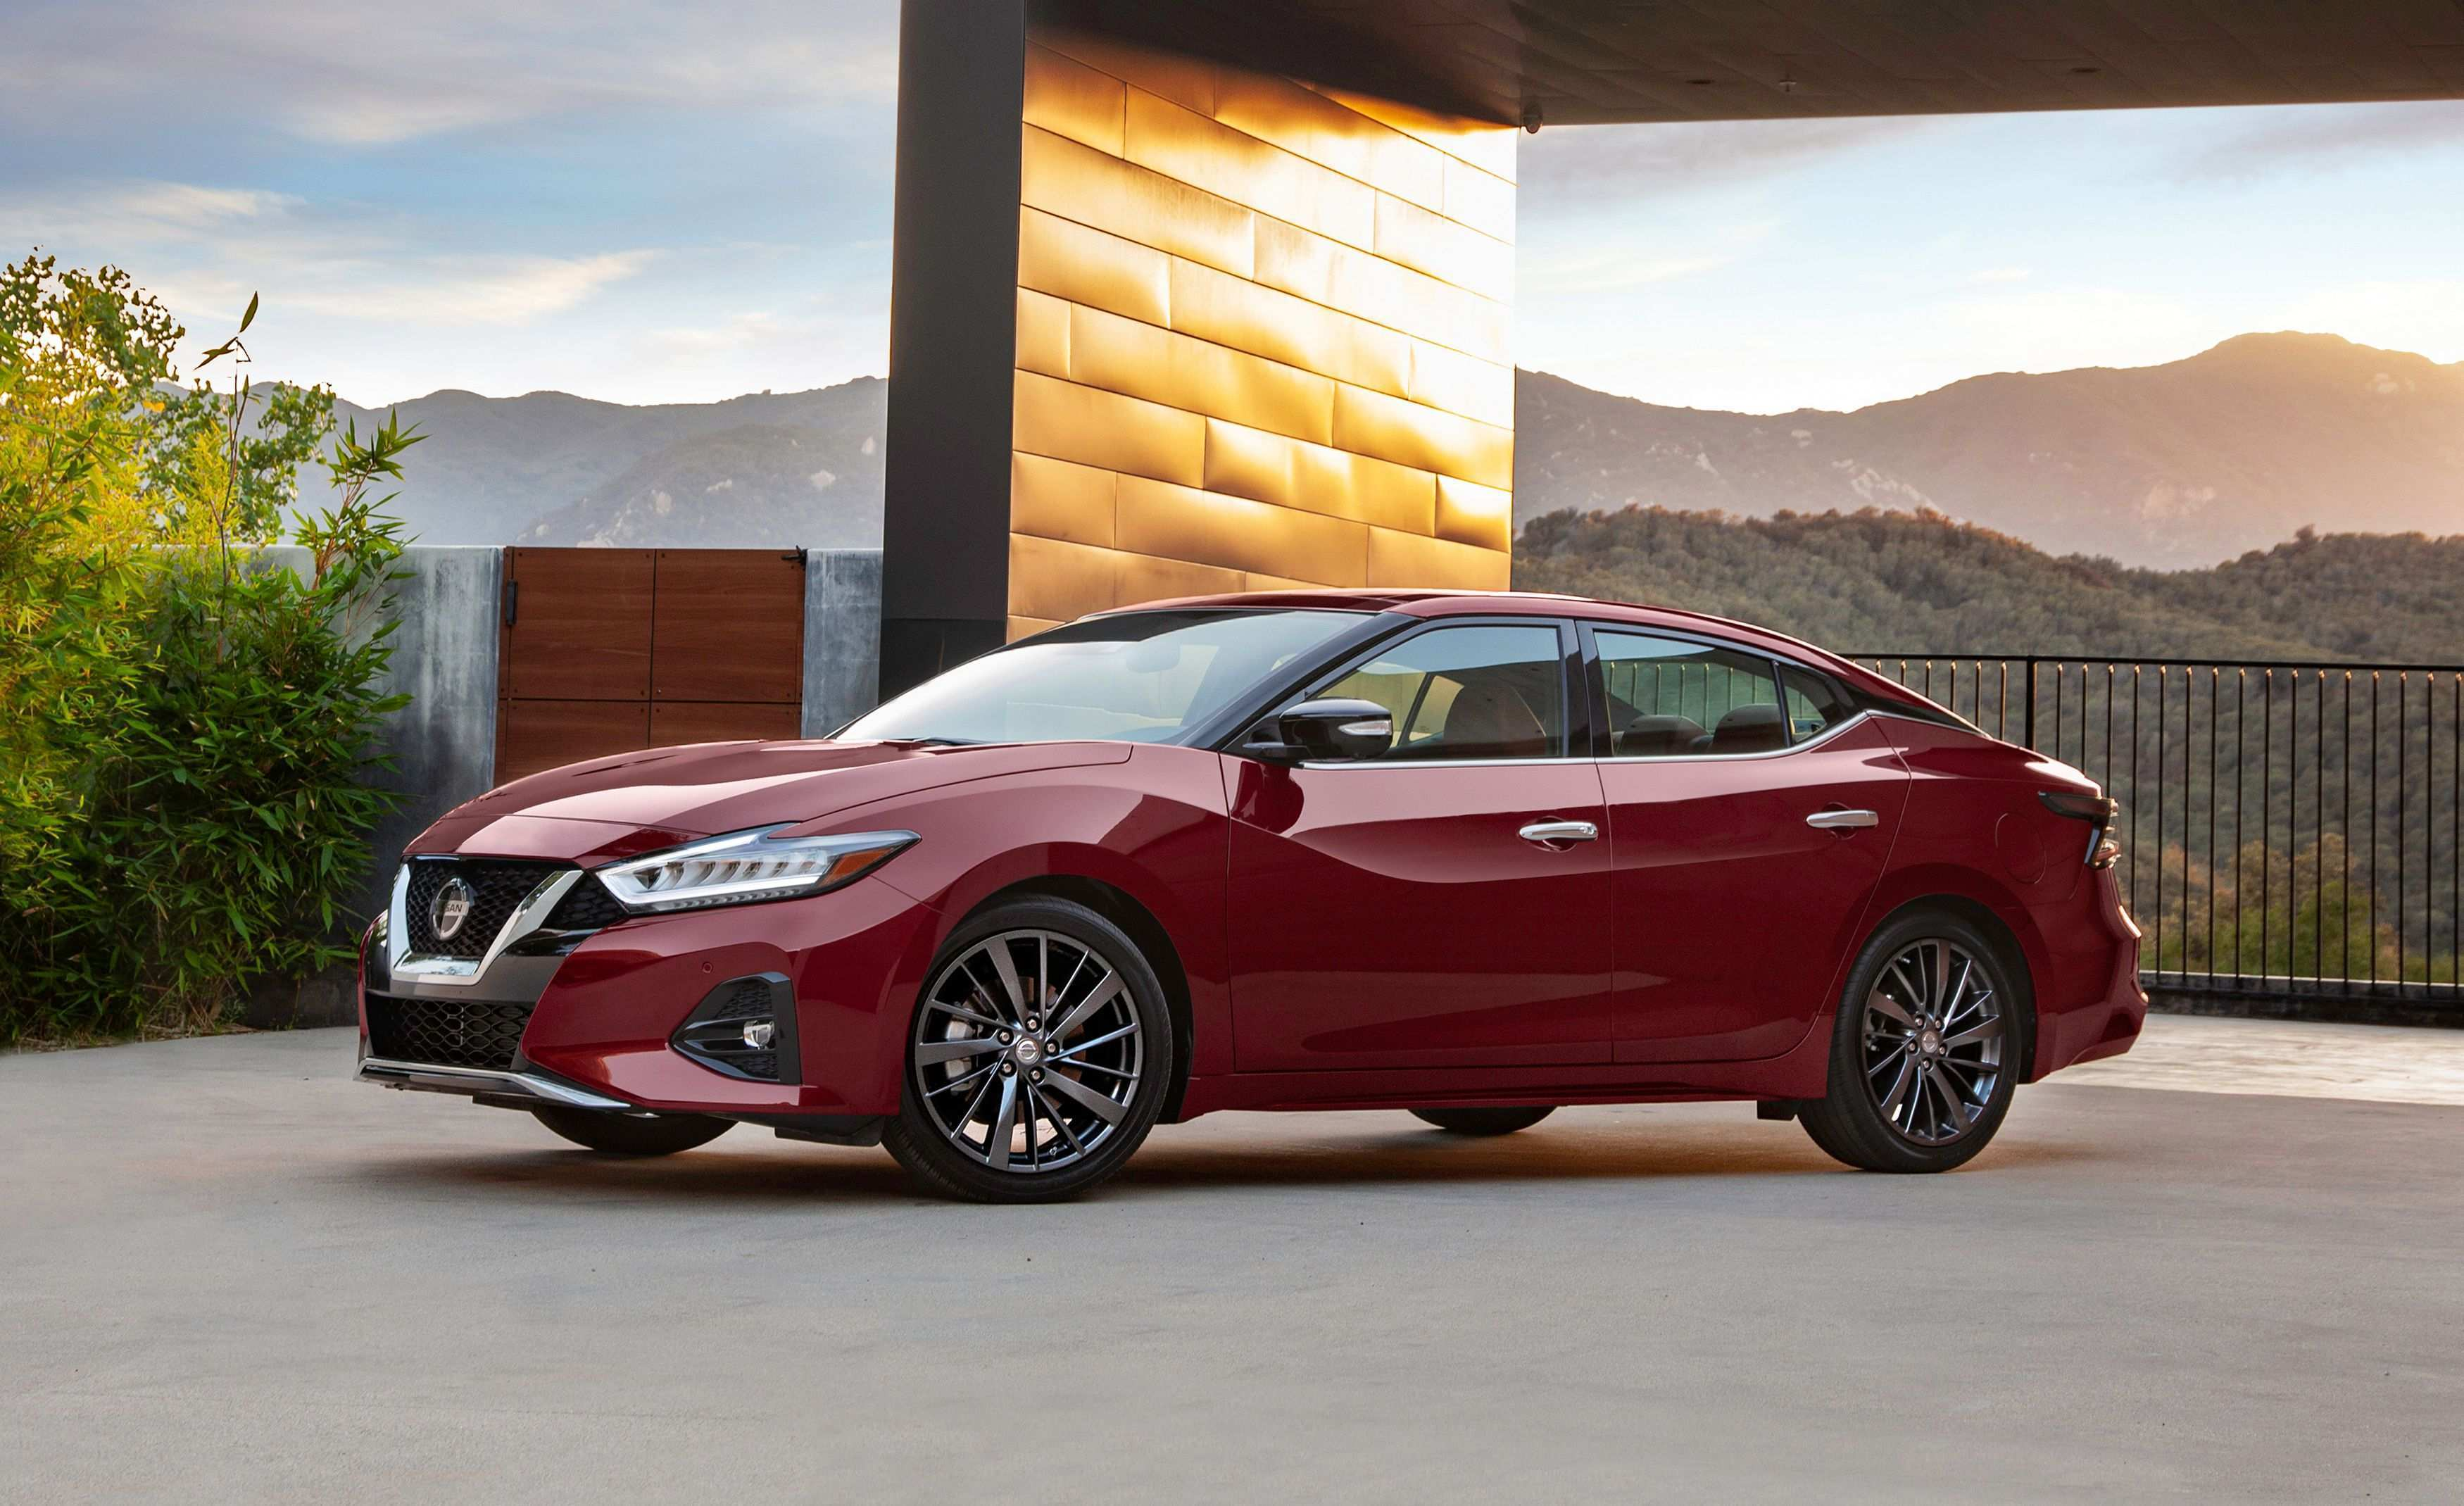 51 All New 2019 Nissan Maxima Research New by 2019 Nissan Maxima